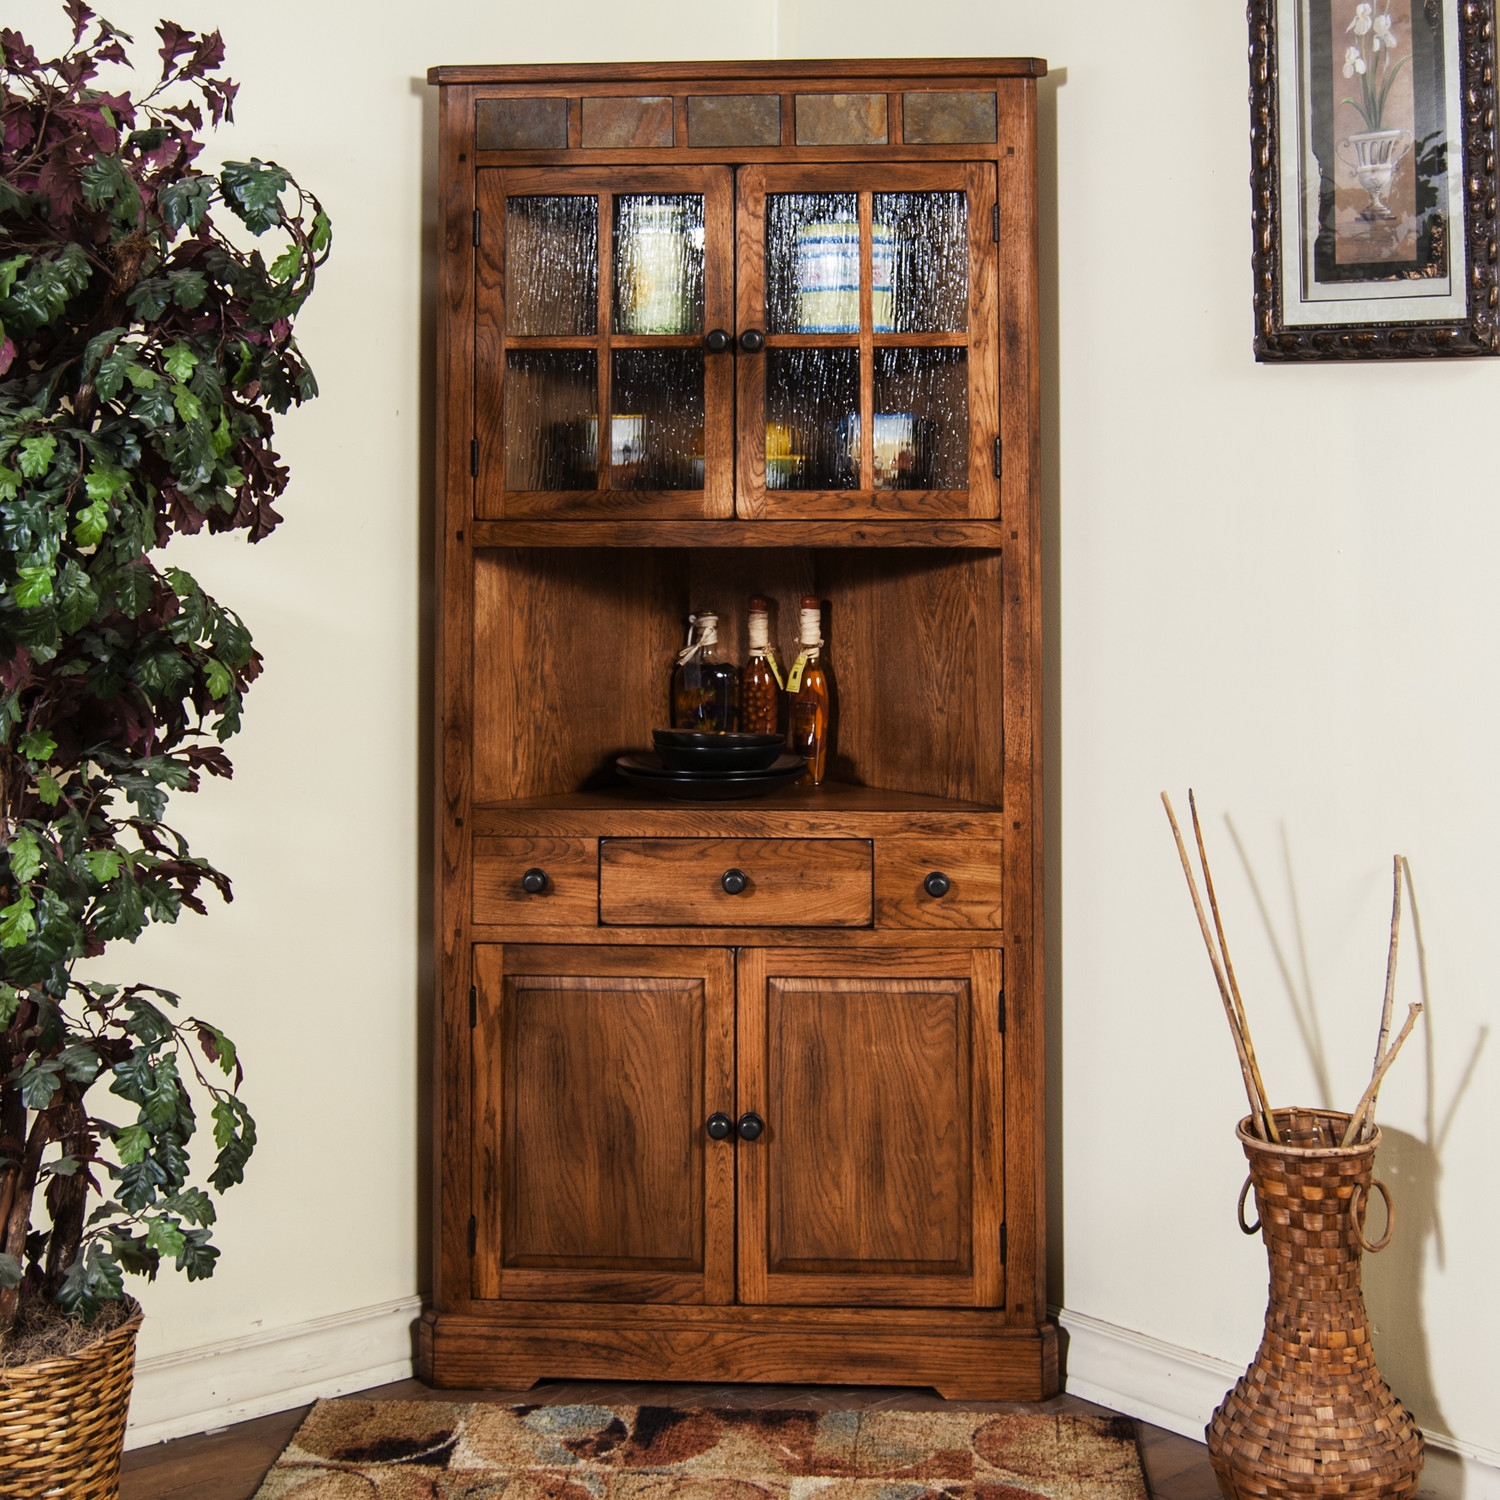 amazing rustic tall china corner  cabinet with glass doors and a drawer and two wooden doors decorated with unique rug and potted plant